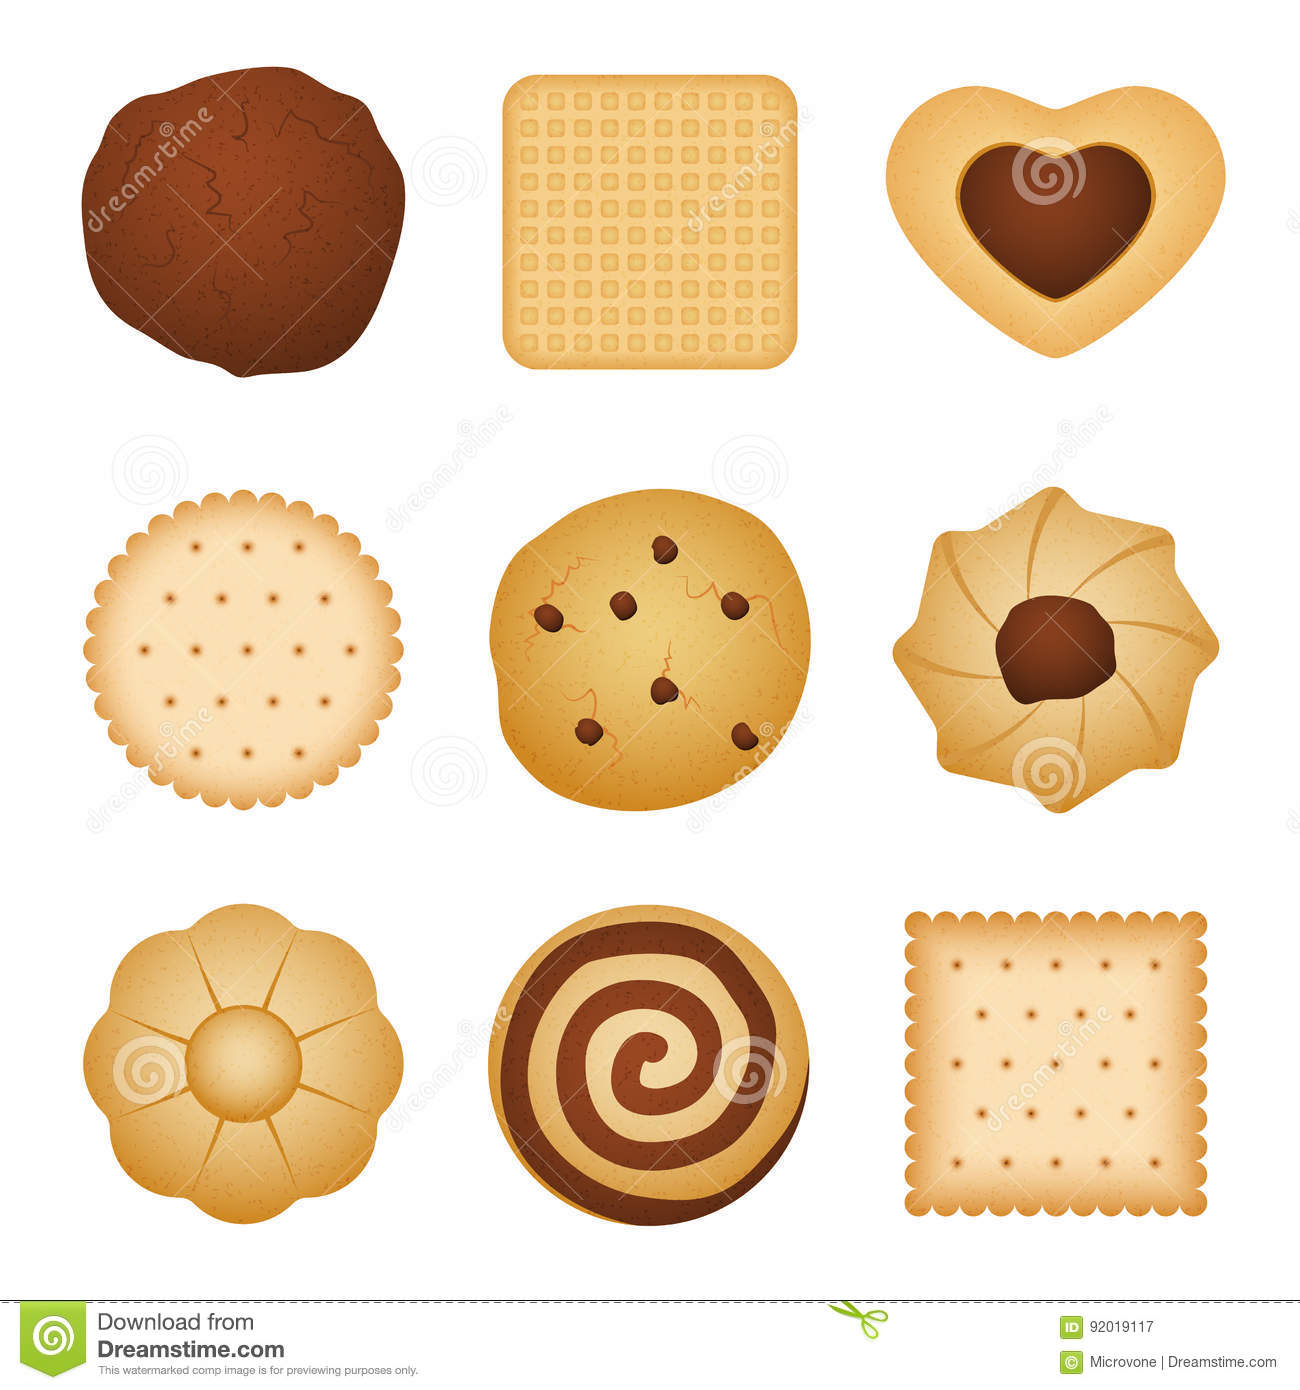 Different Shapes Of Eating Biscuit Home Made Cookies, Food